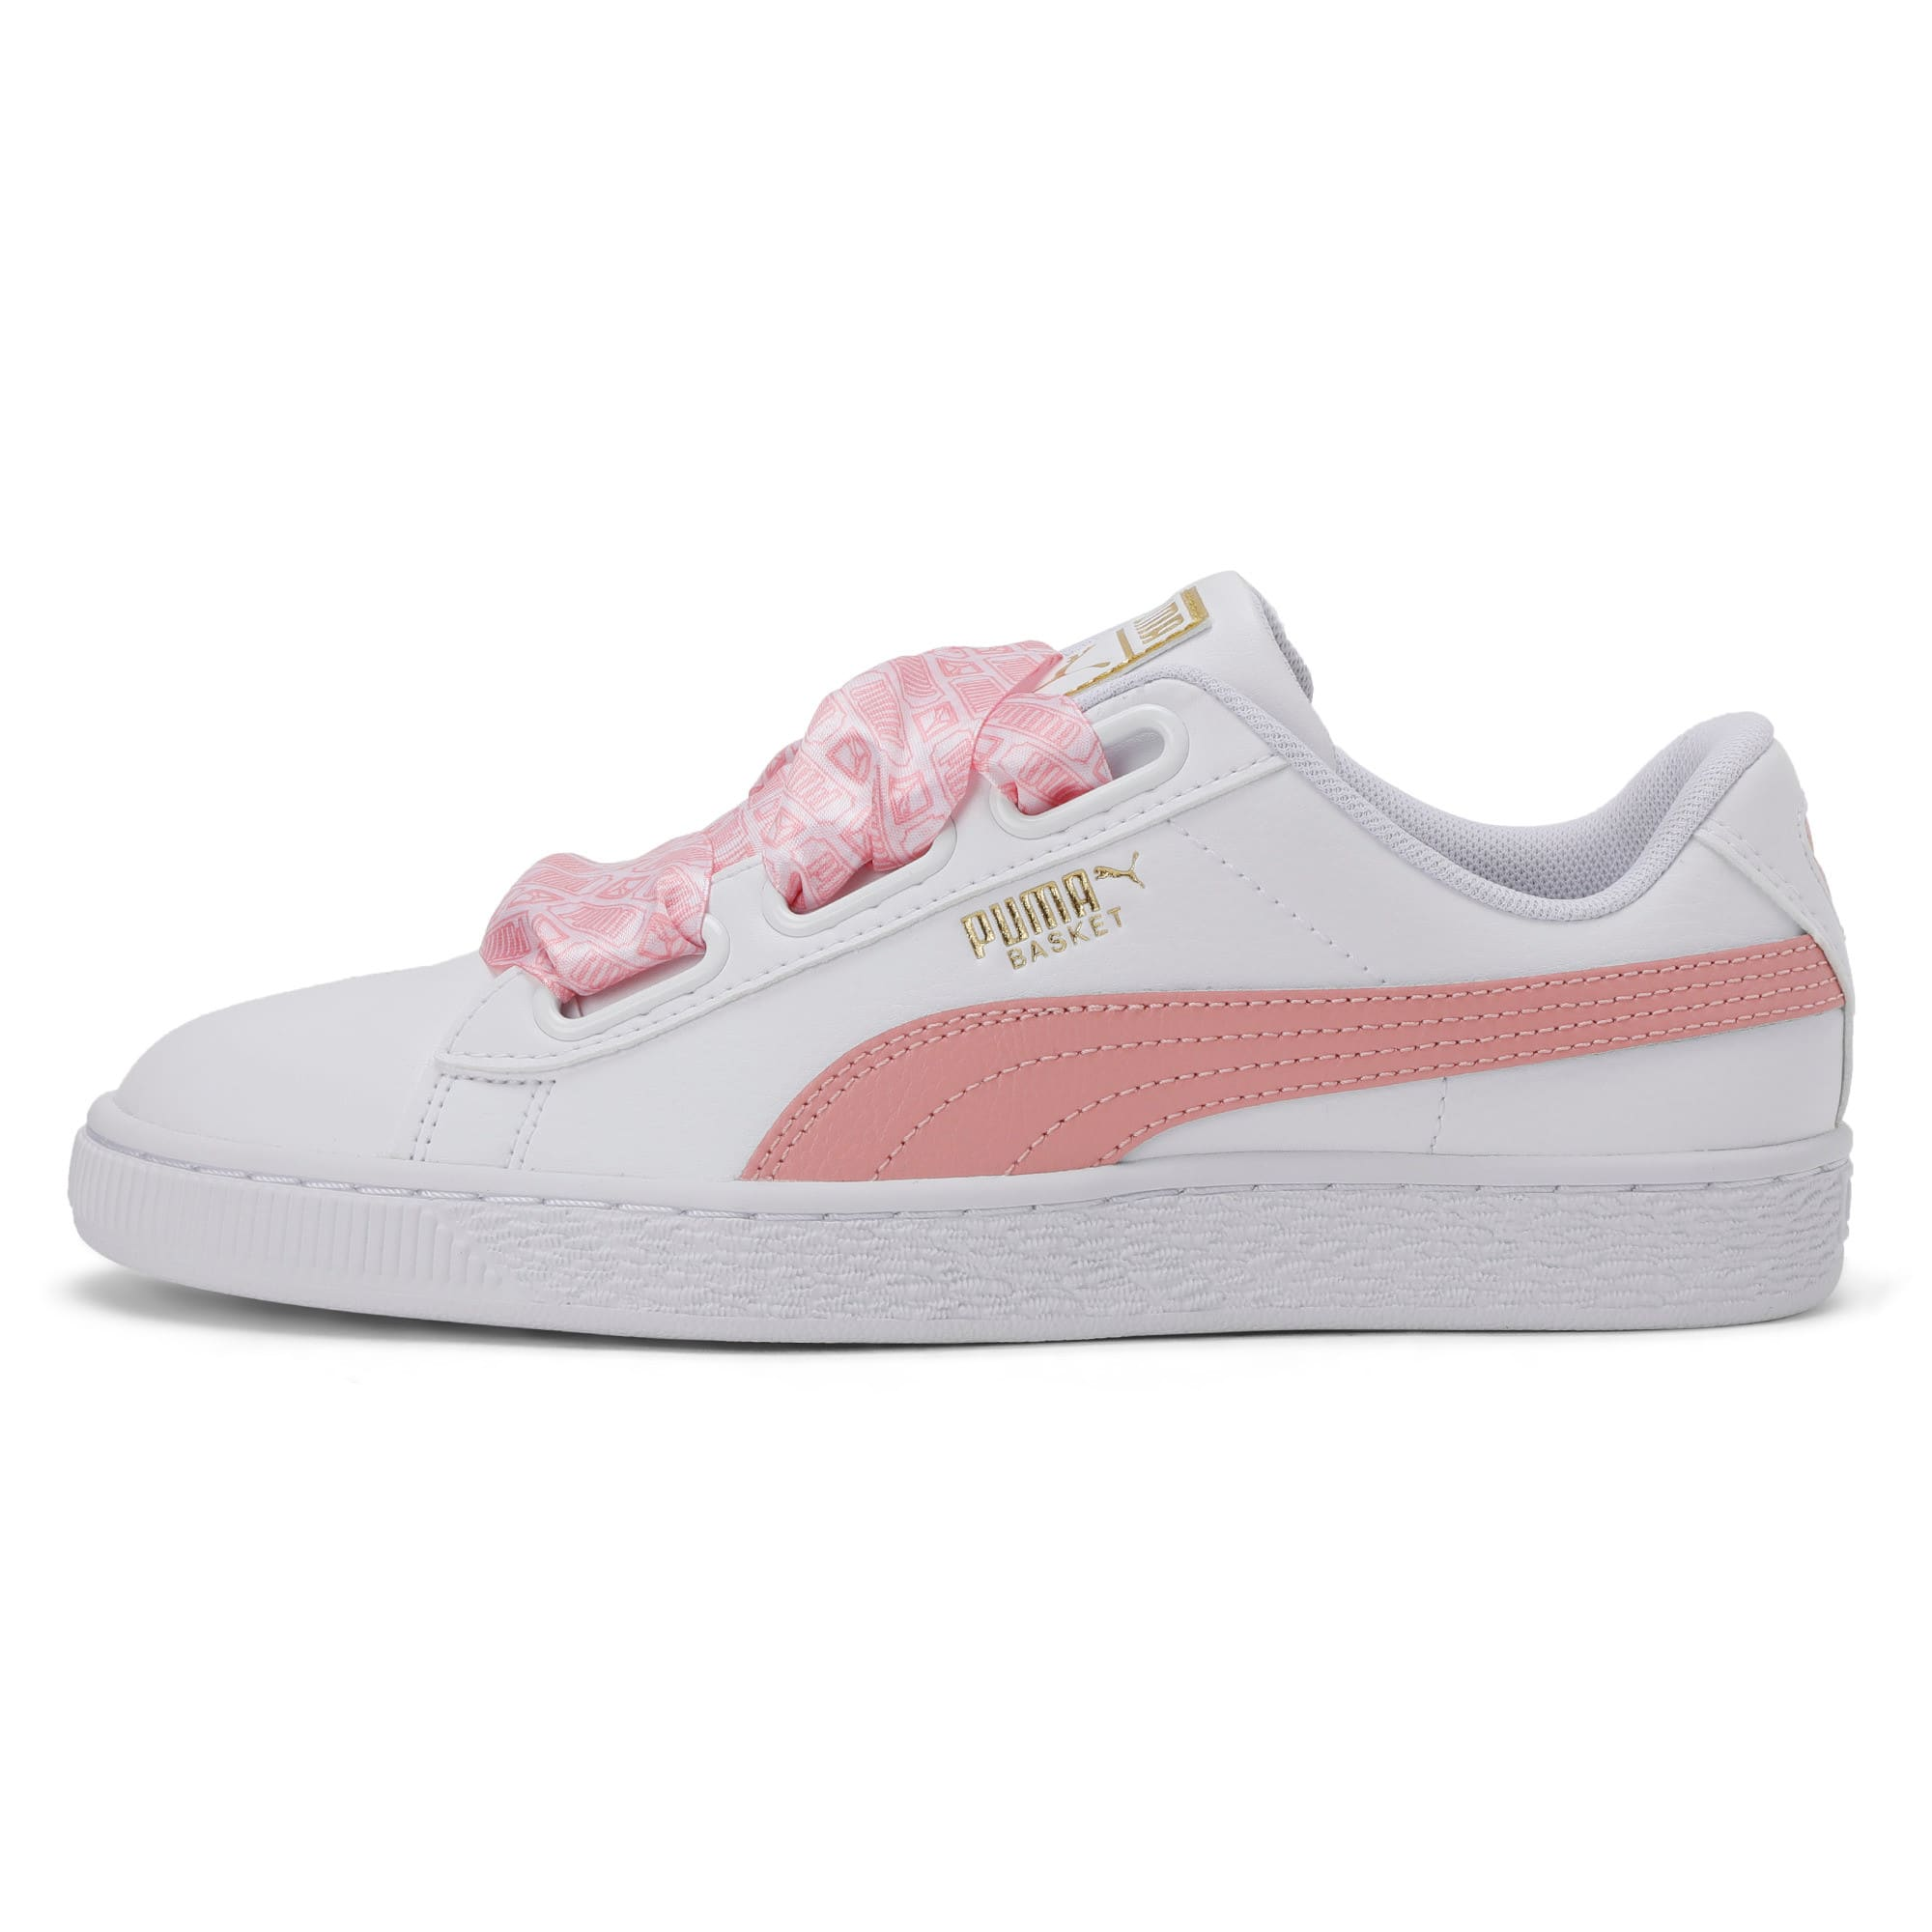 Thumbnail 1 of Basket Heart Reinvent Women's Trainers, Puma White-Bridal Rose, medium-IND